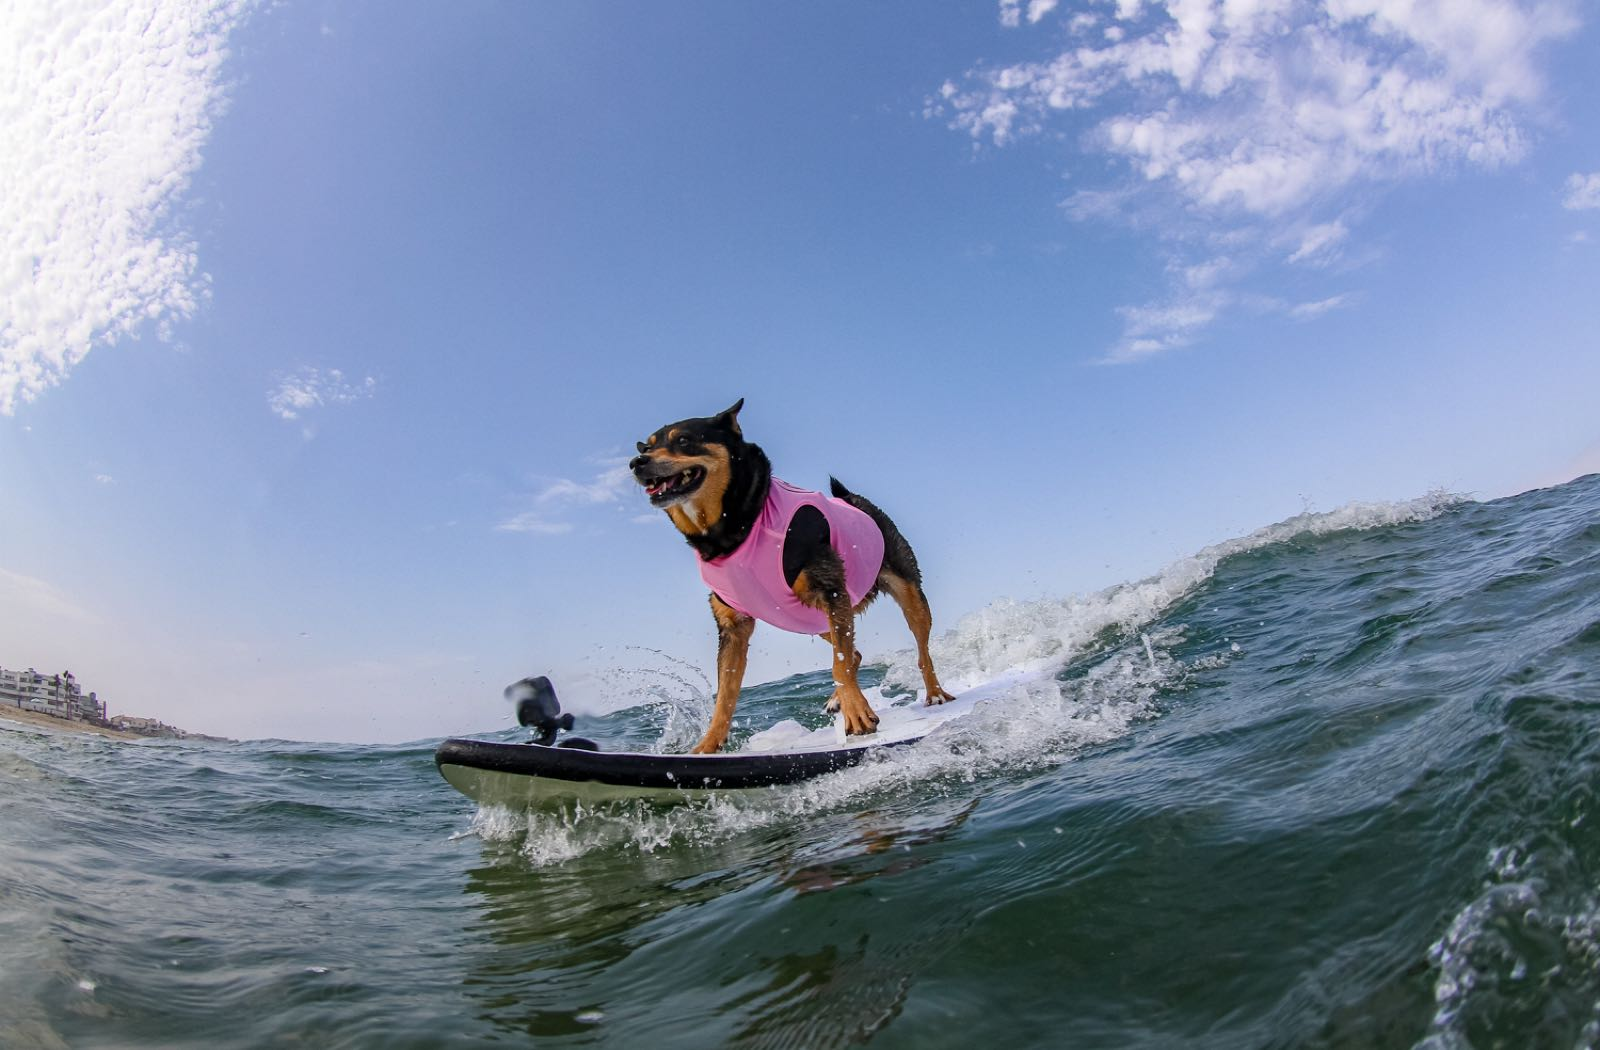 Dog on a Surfboard - Top Things to Do in San Diego